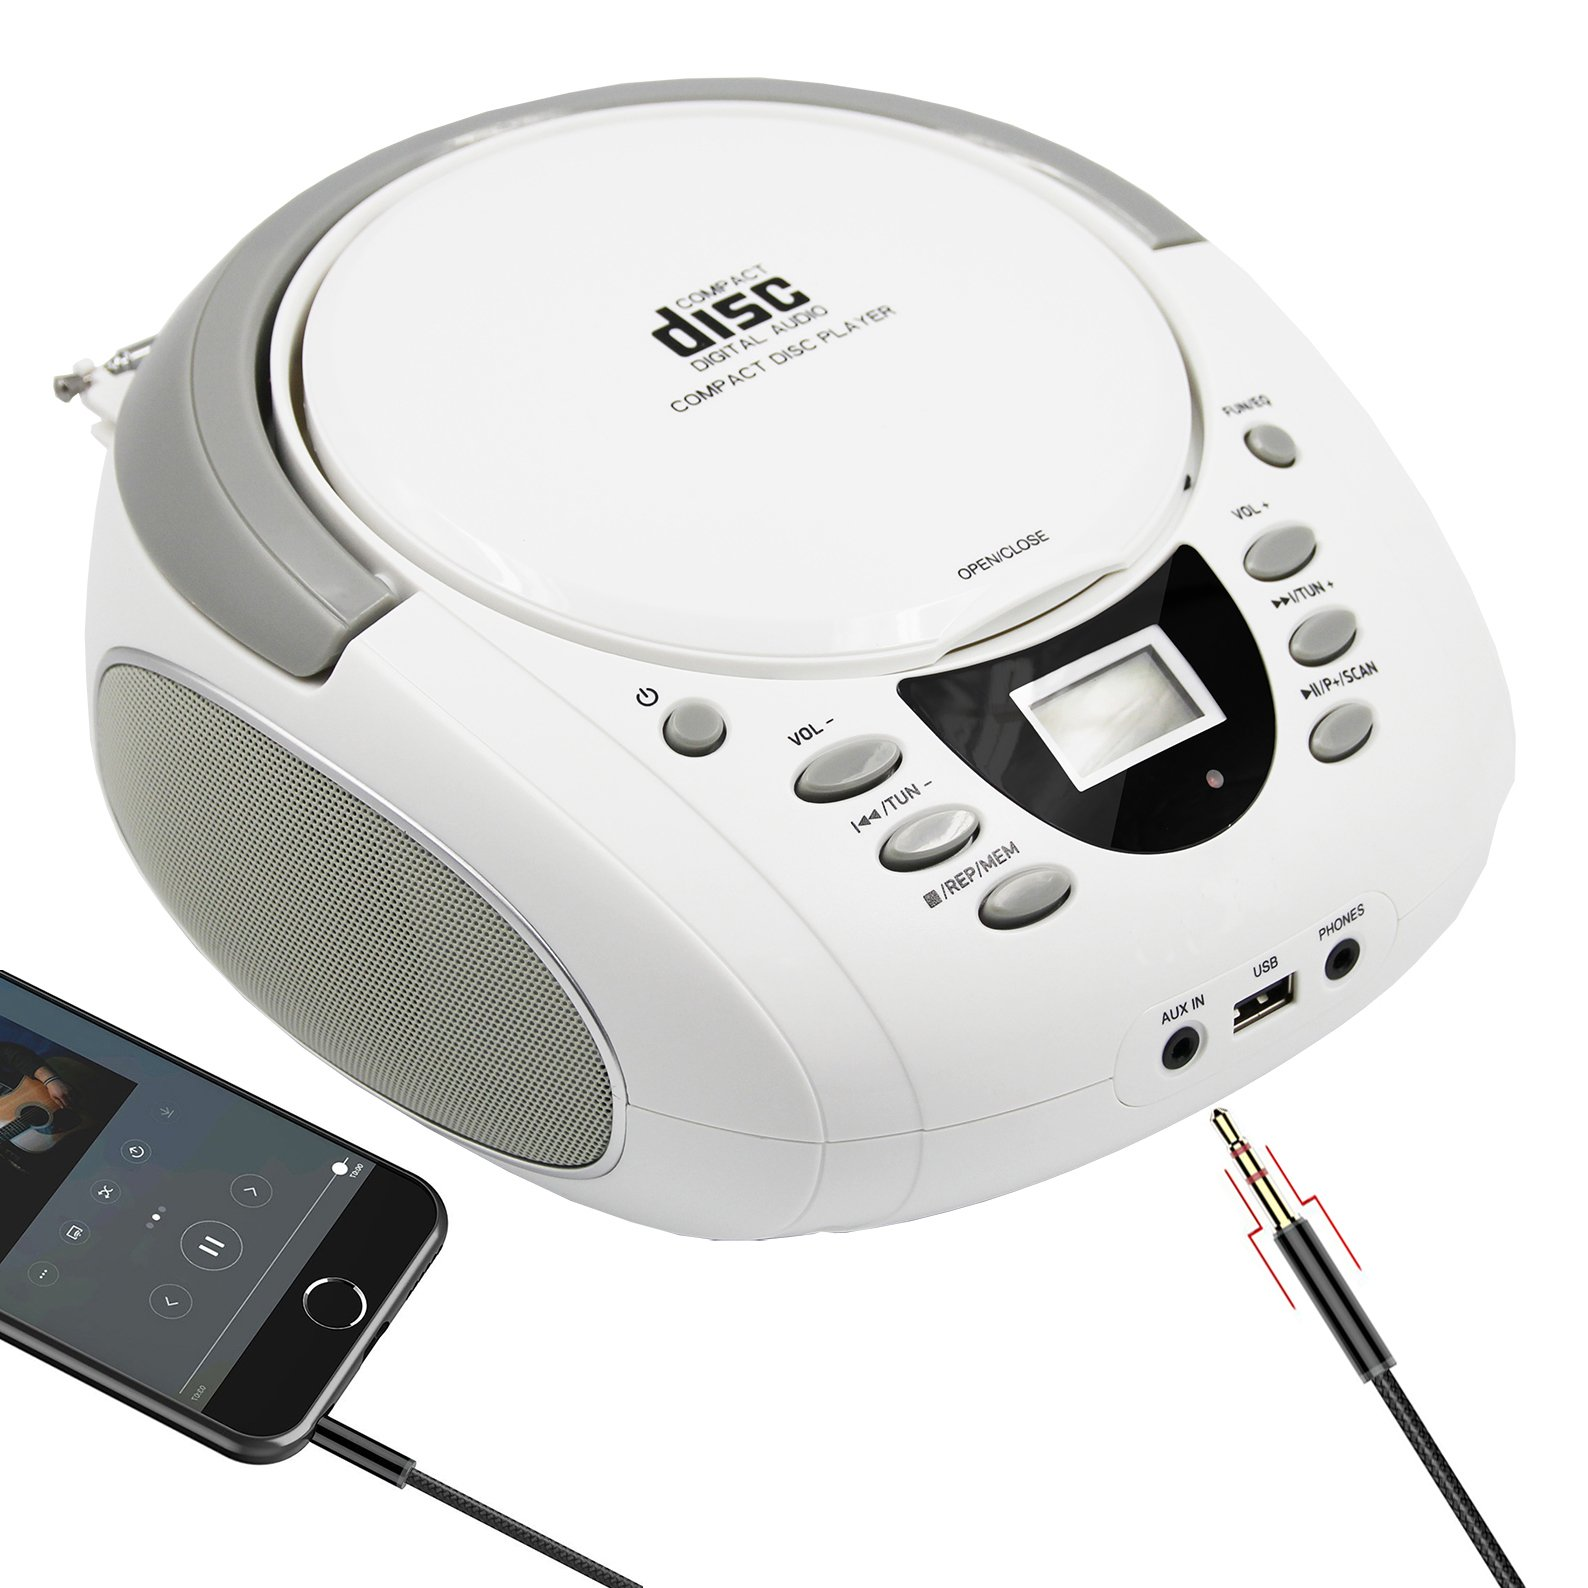 LONPOO Stereo Portable CD Player Boombox with Bluetooth AM/FM Radio and Aux Line-in, LED Display and USB/Headphone Jack (White) by LONPOO